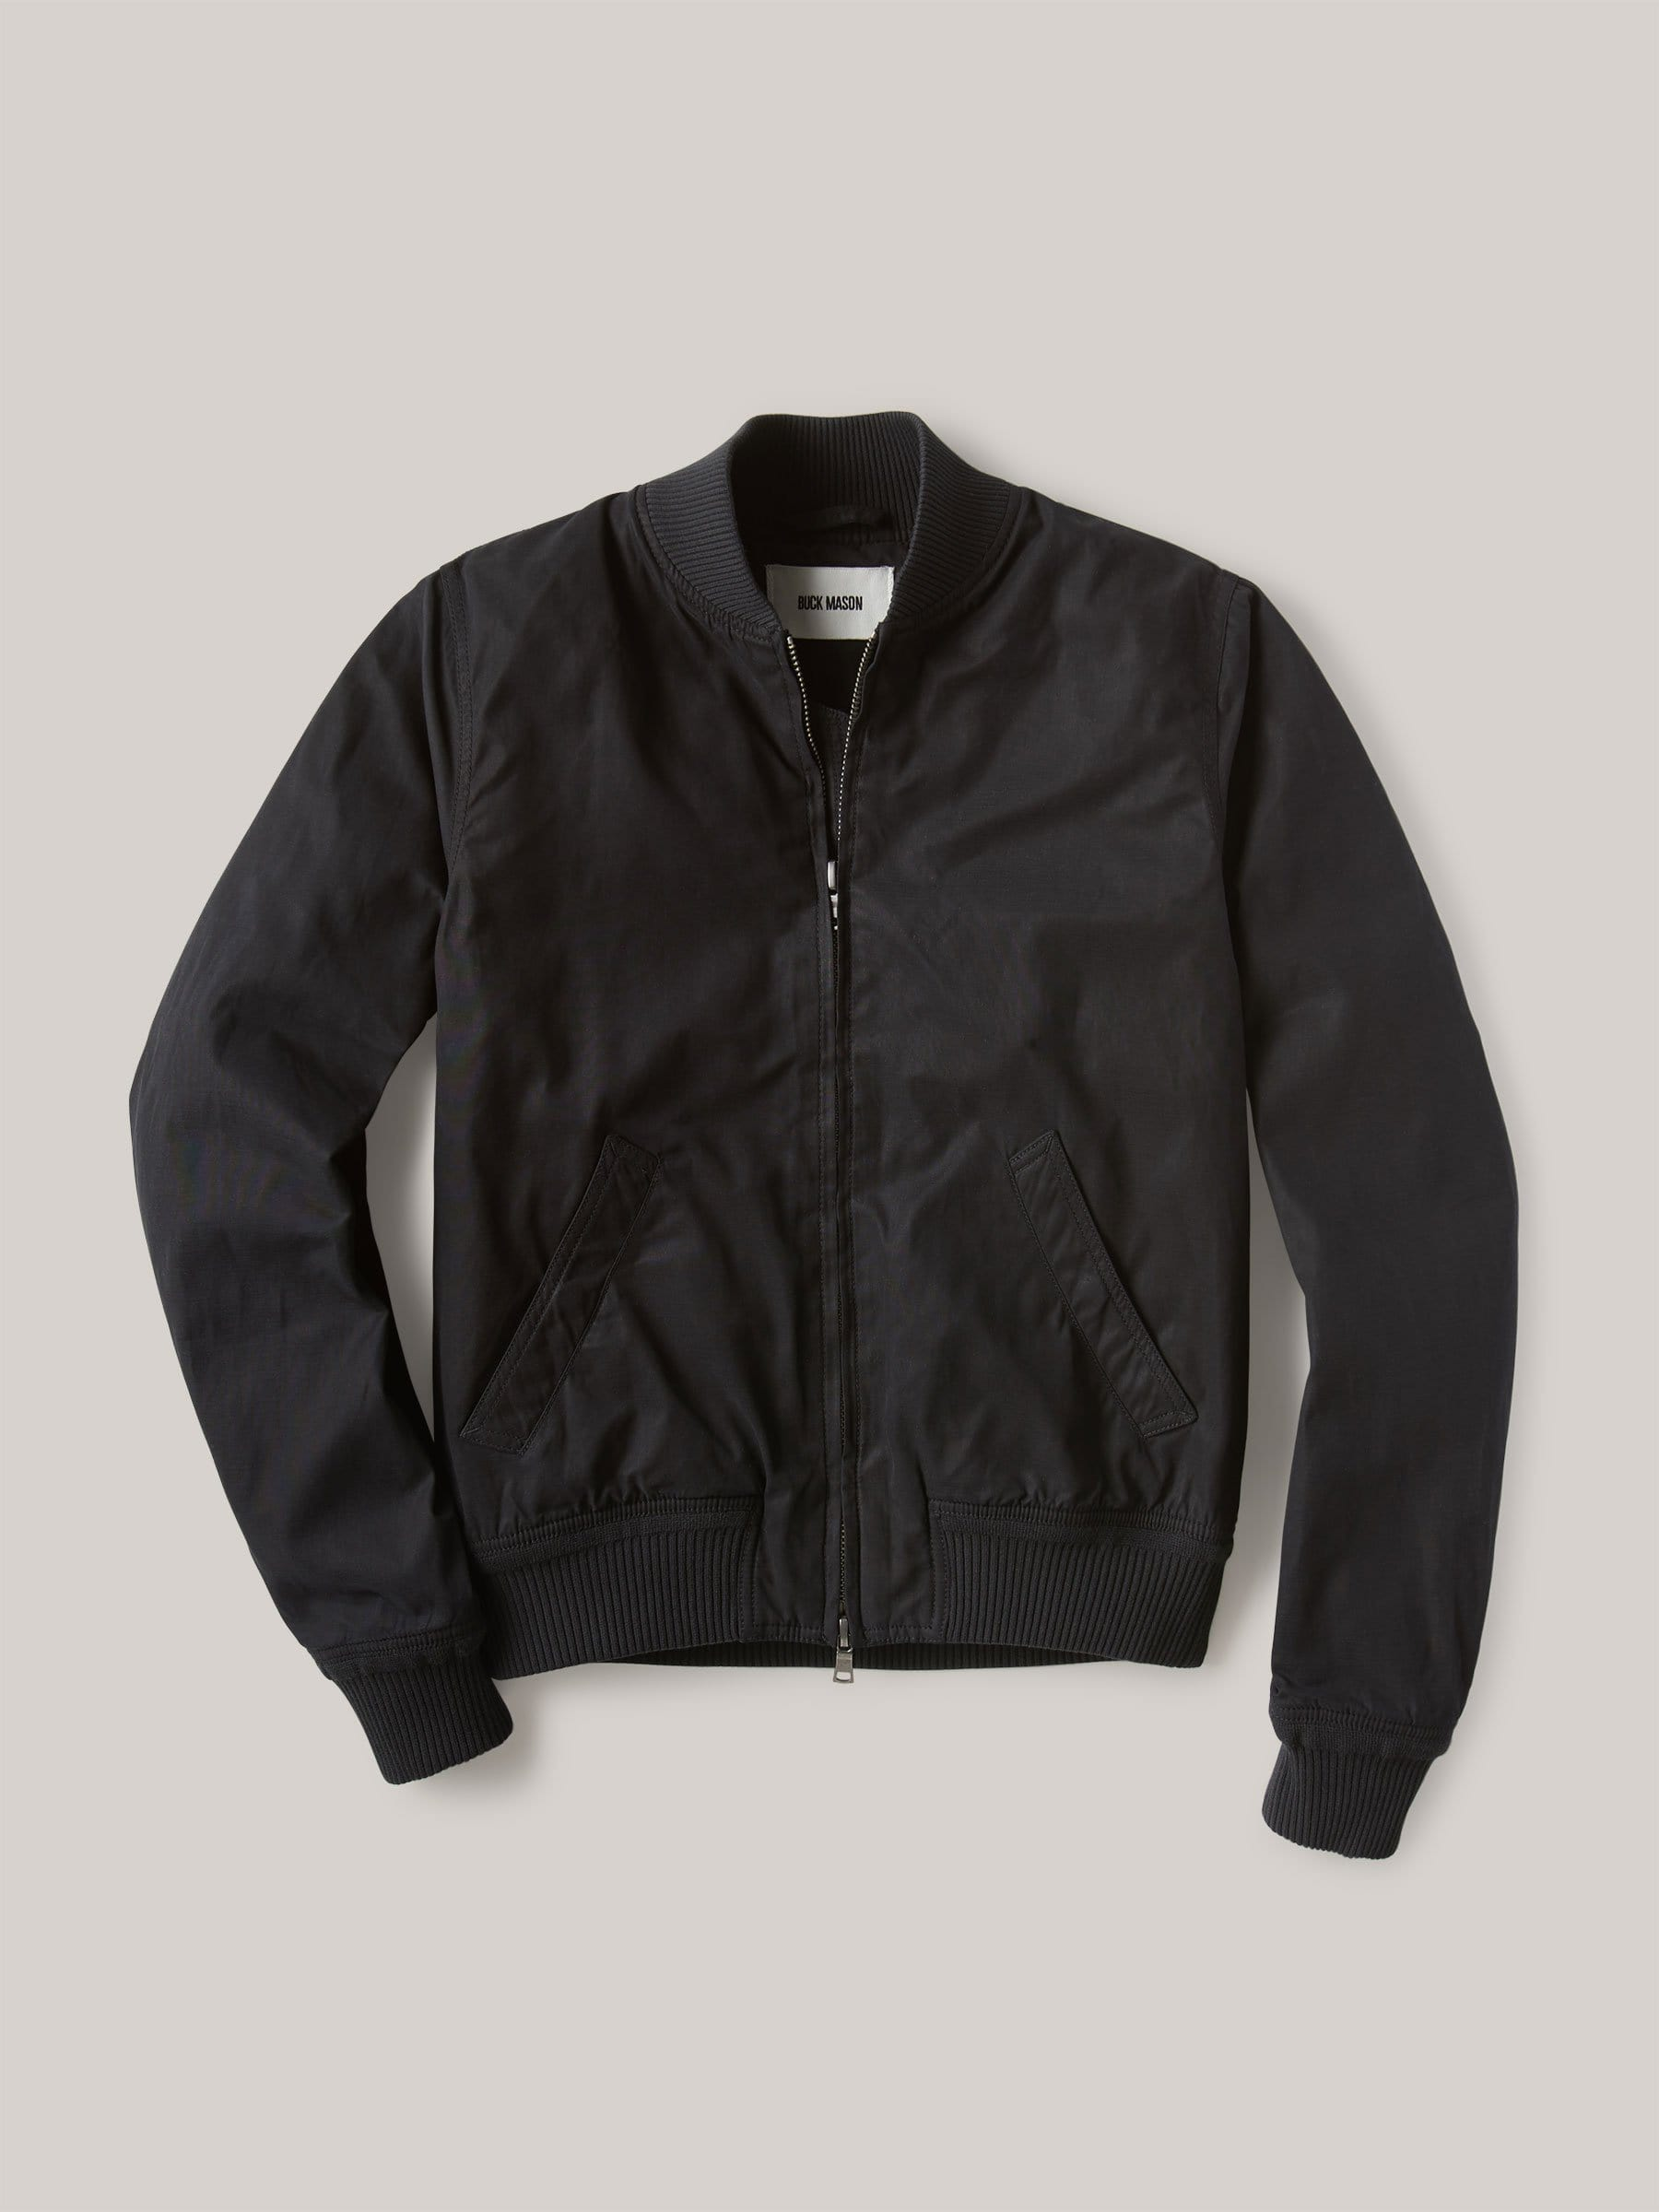 Buck Mason - Black Oil Cloth Bomber